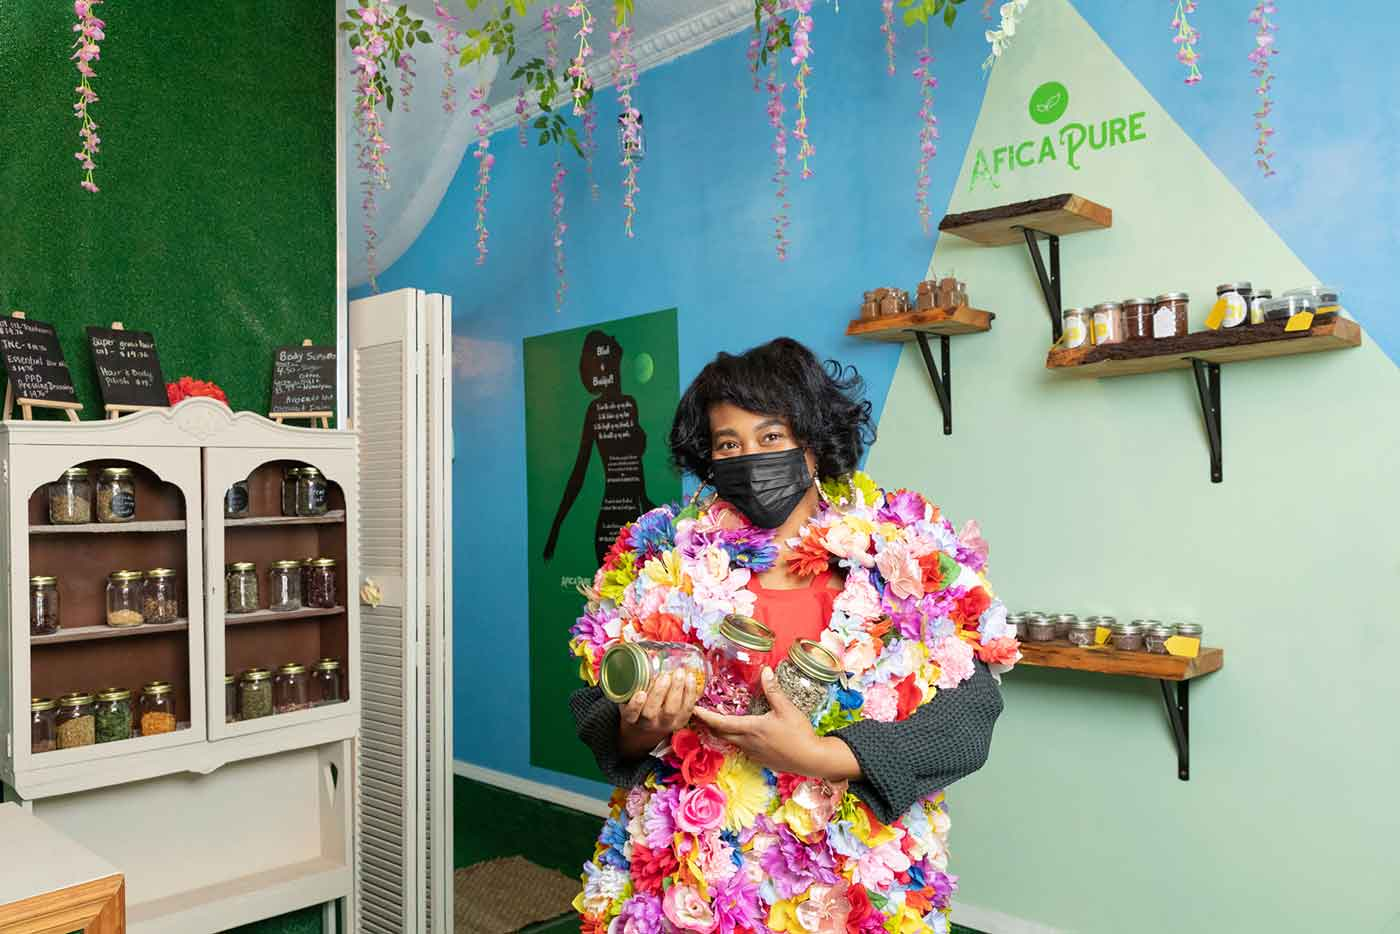 A women dressed in flowers holds jars of product